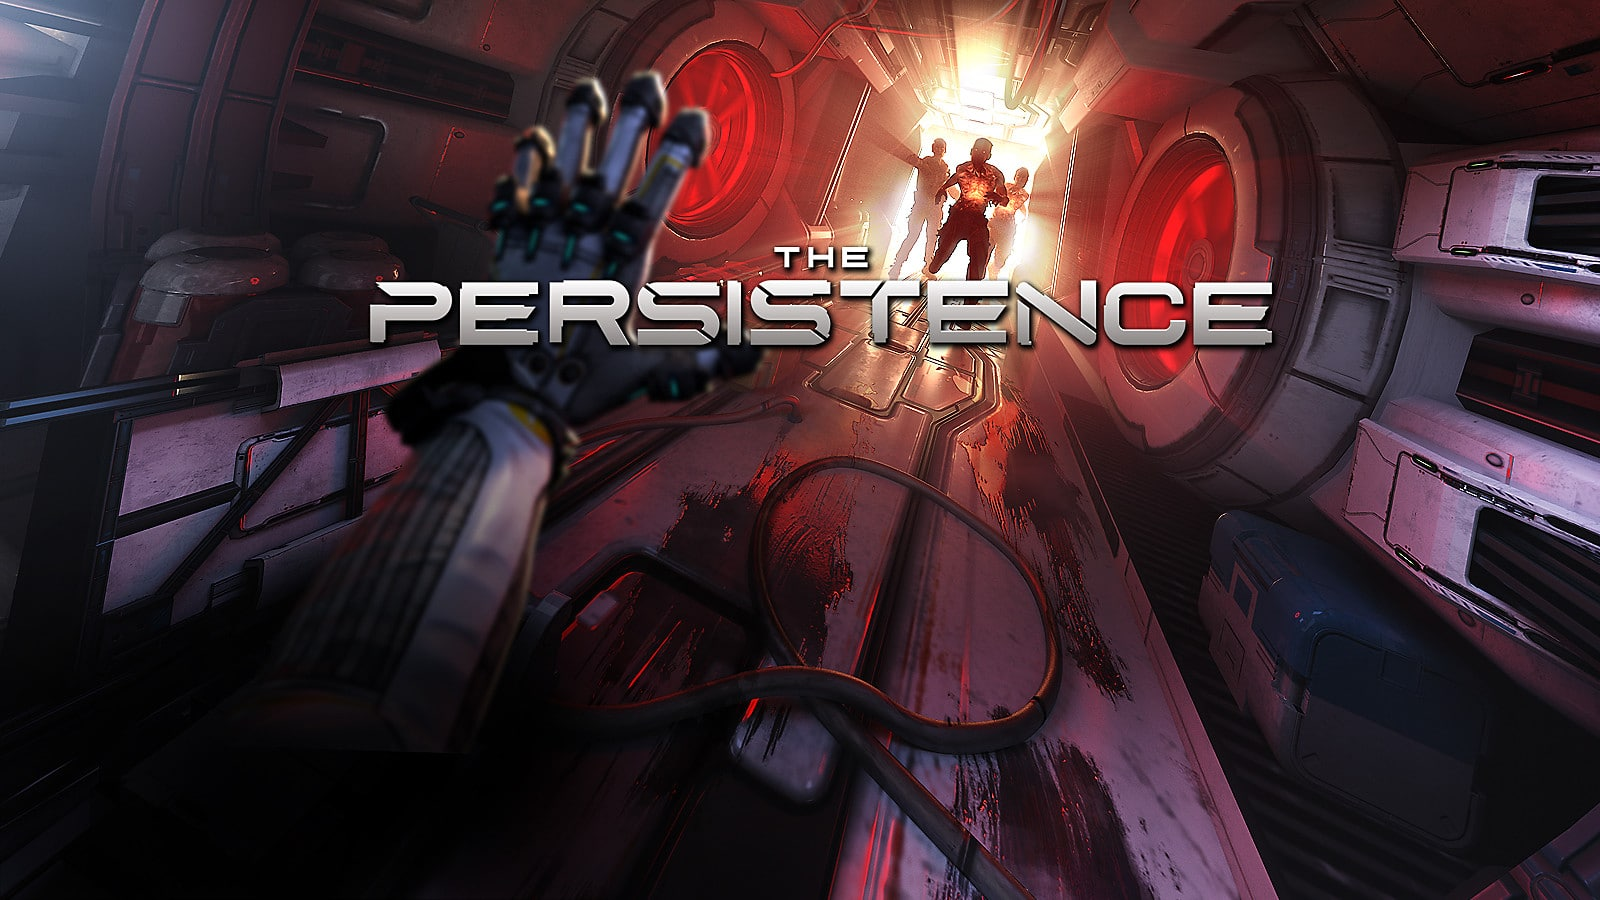 The Persistence launches May 21st